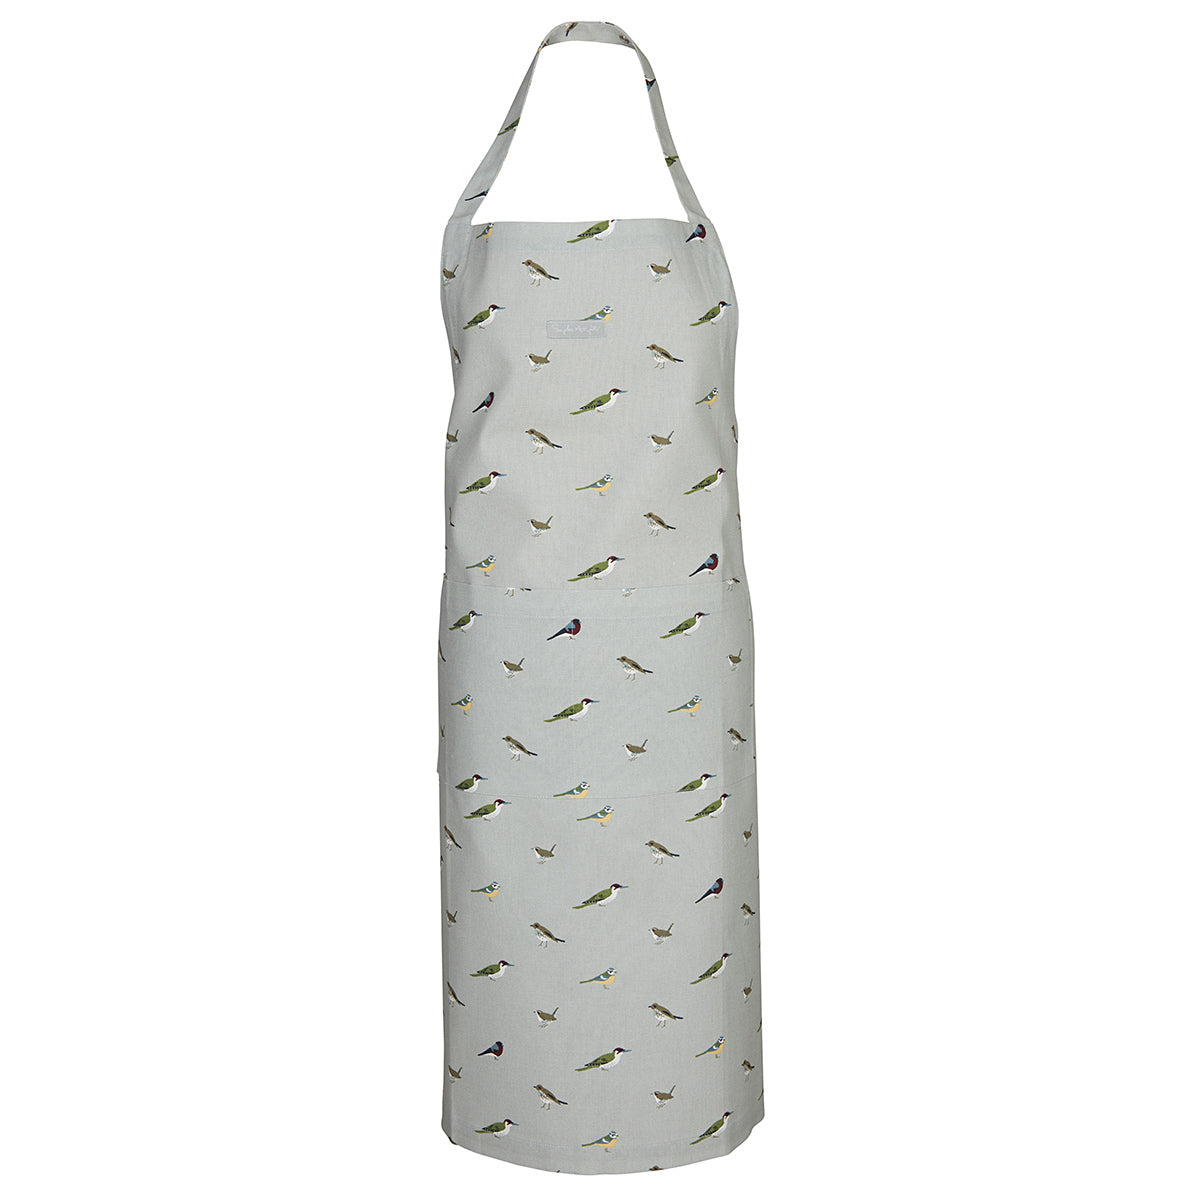 Garden Birds Adult Apron